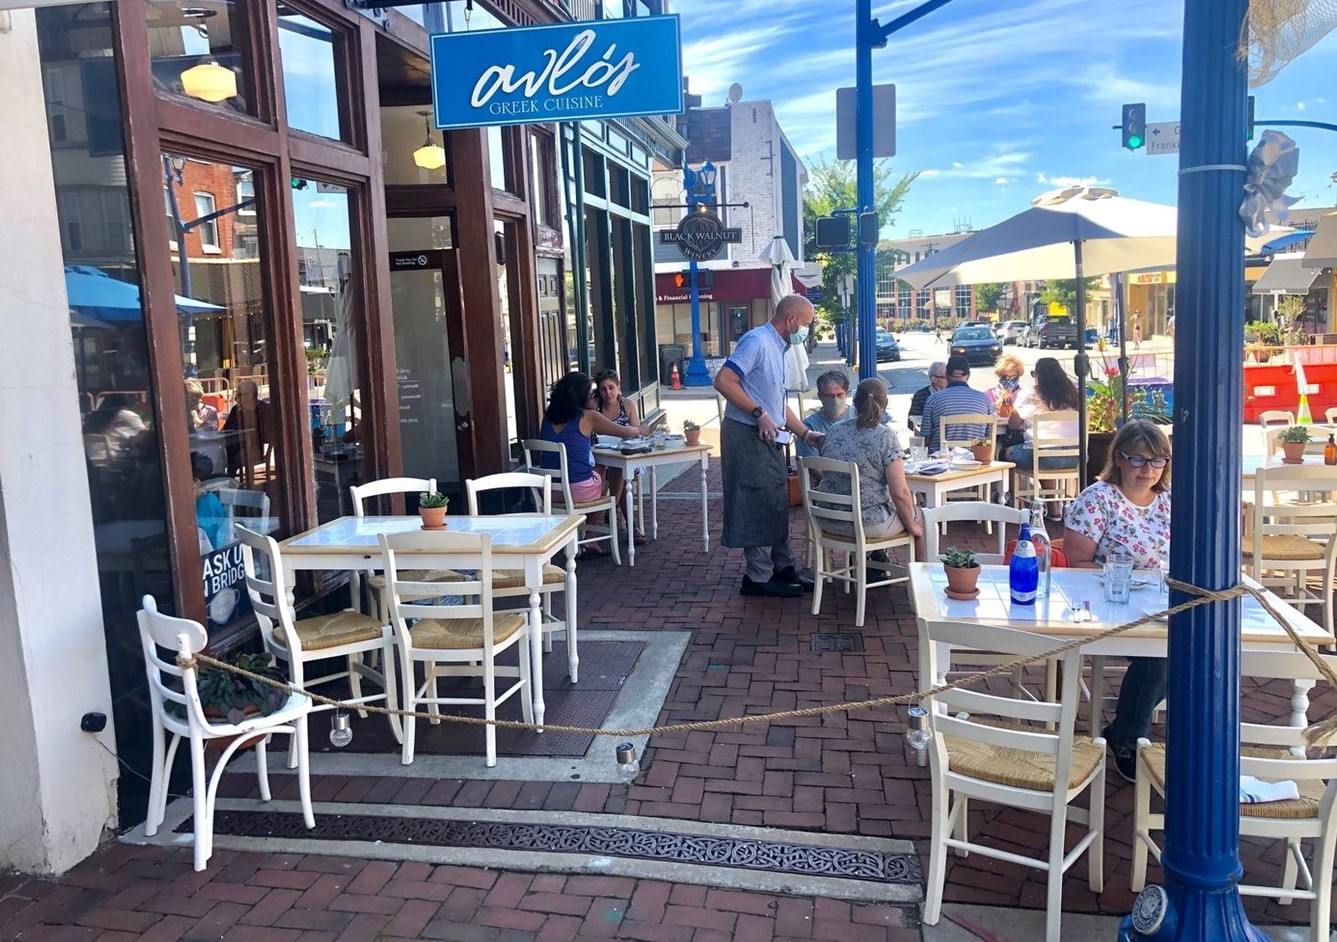 Pair of Chester County Restaurants Acclaimed for Their Outdoor Dining